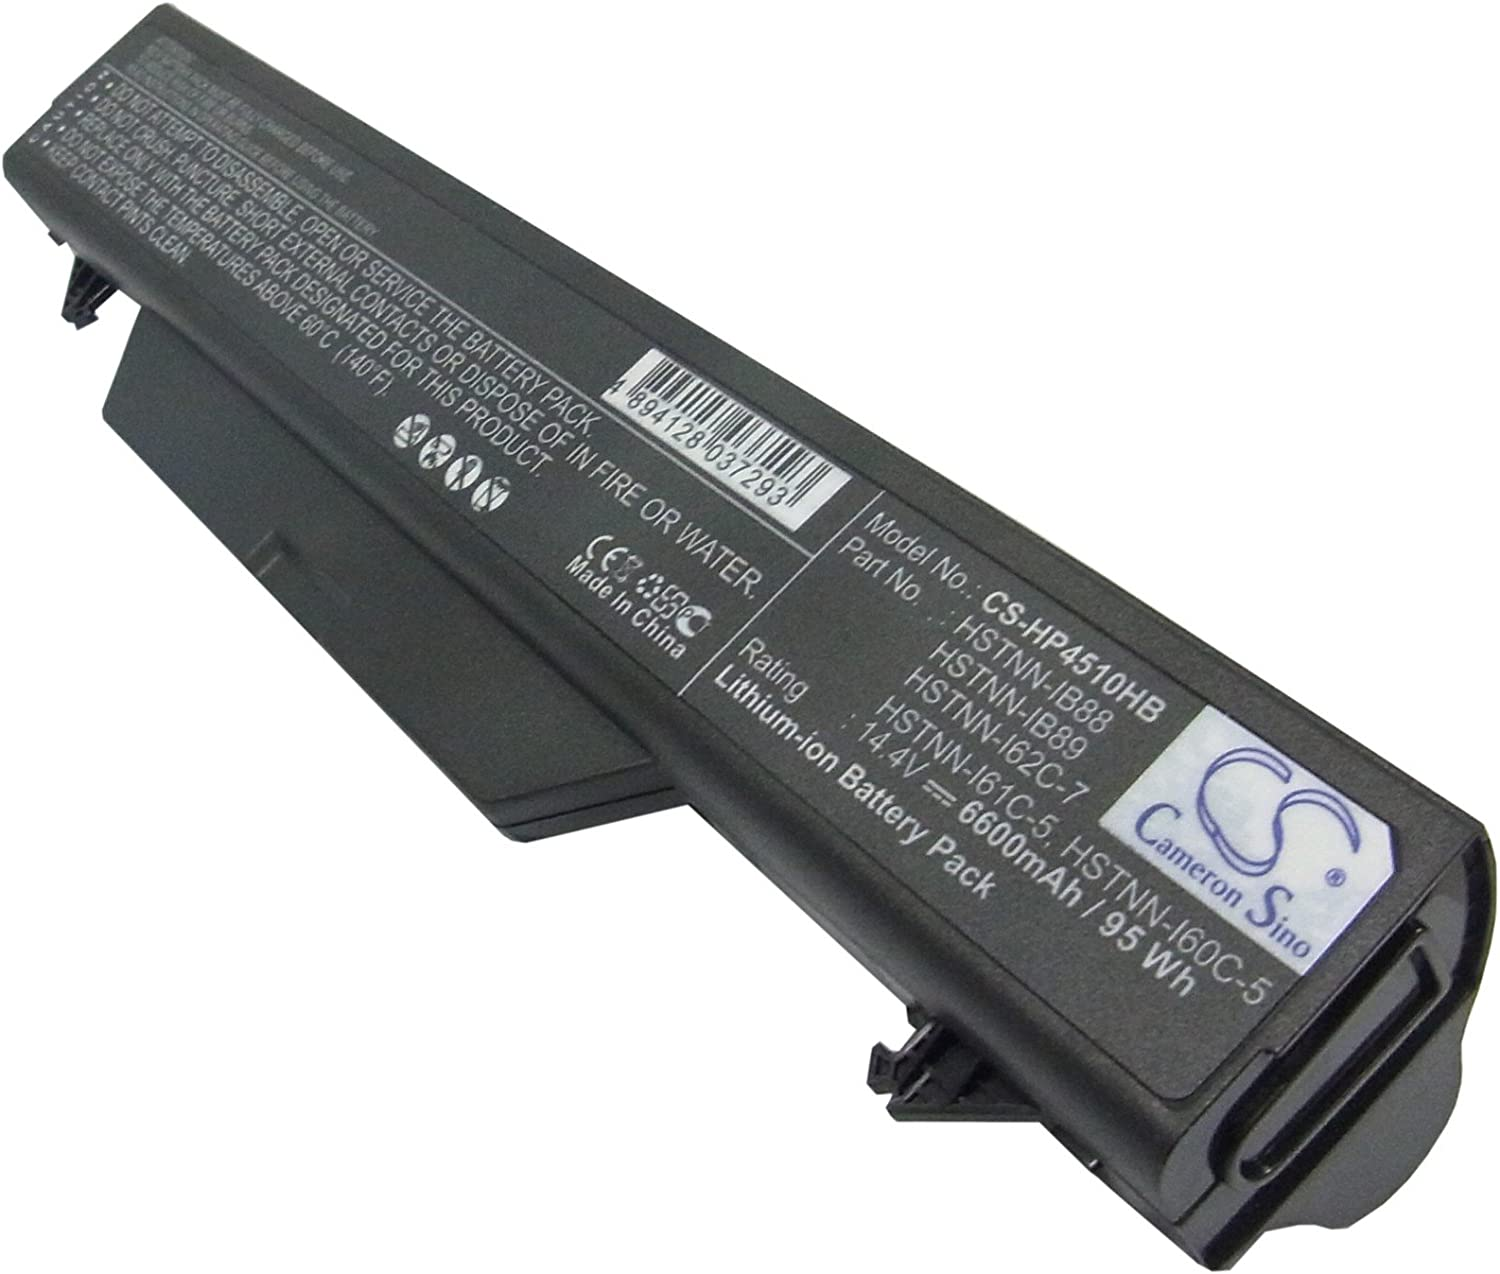 Replacement Battery for HP Probook 4510s, ProBook 4510s/CT, Probook 4515s, ProBook 4515s/CT, Probook 4710s, ProBook 4710s/CT, Probook 4720s